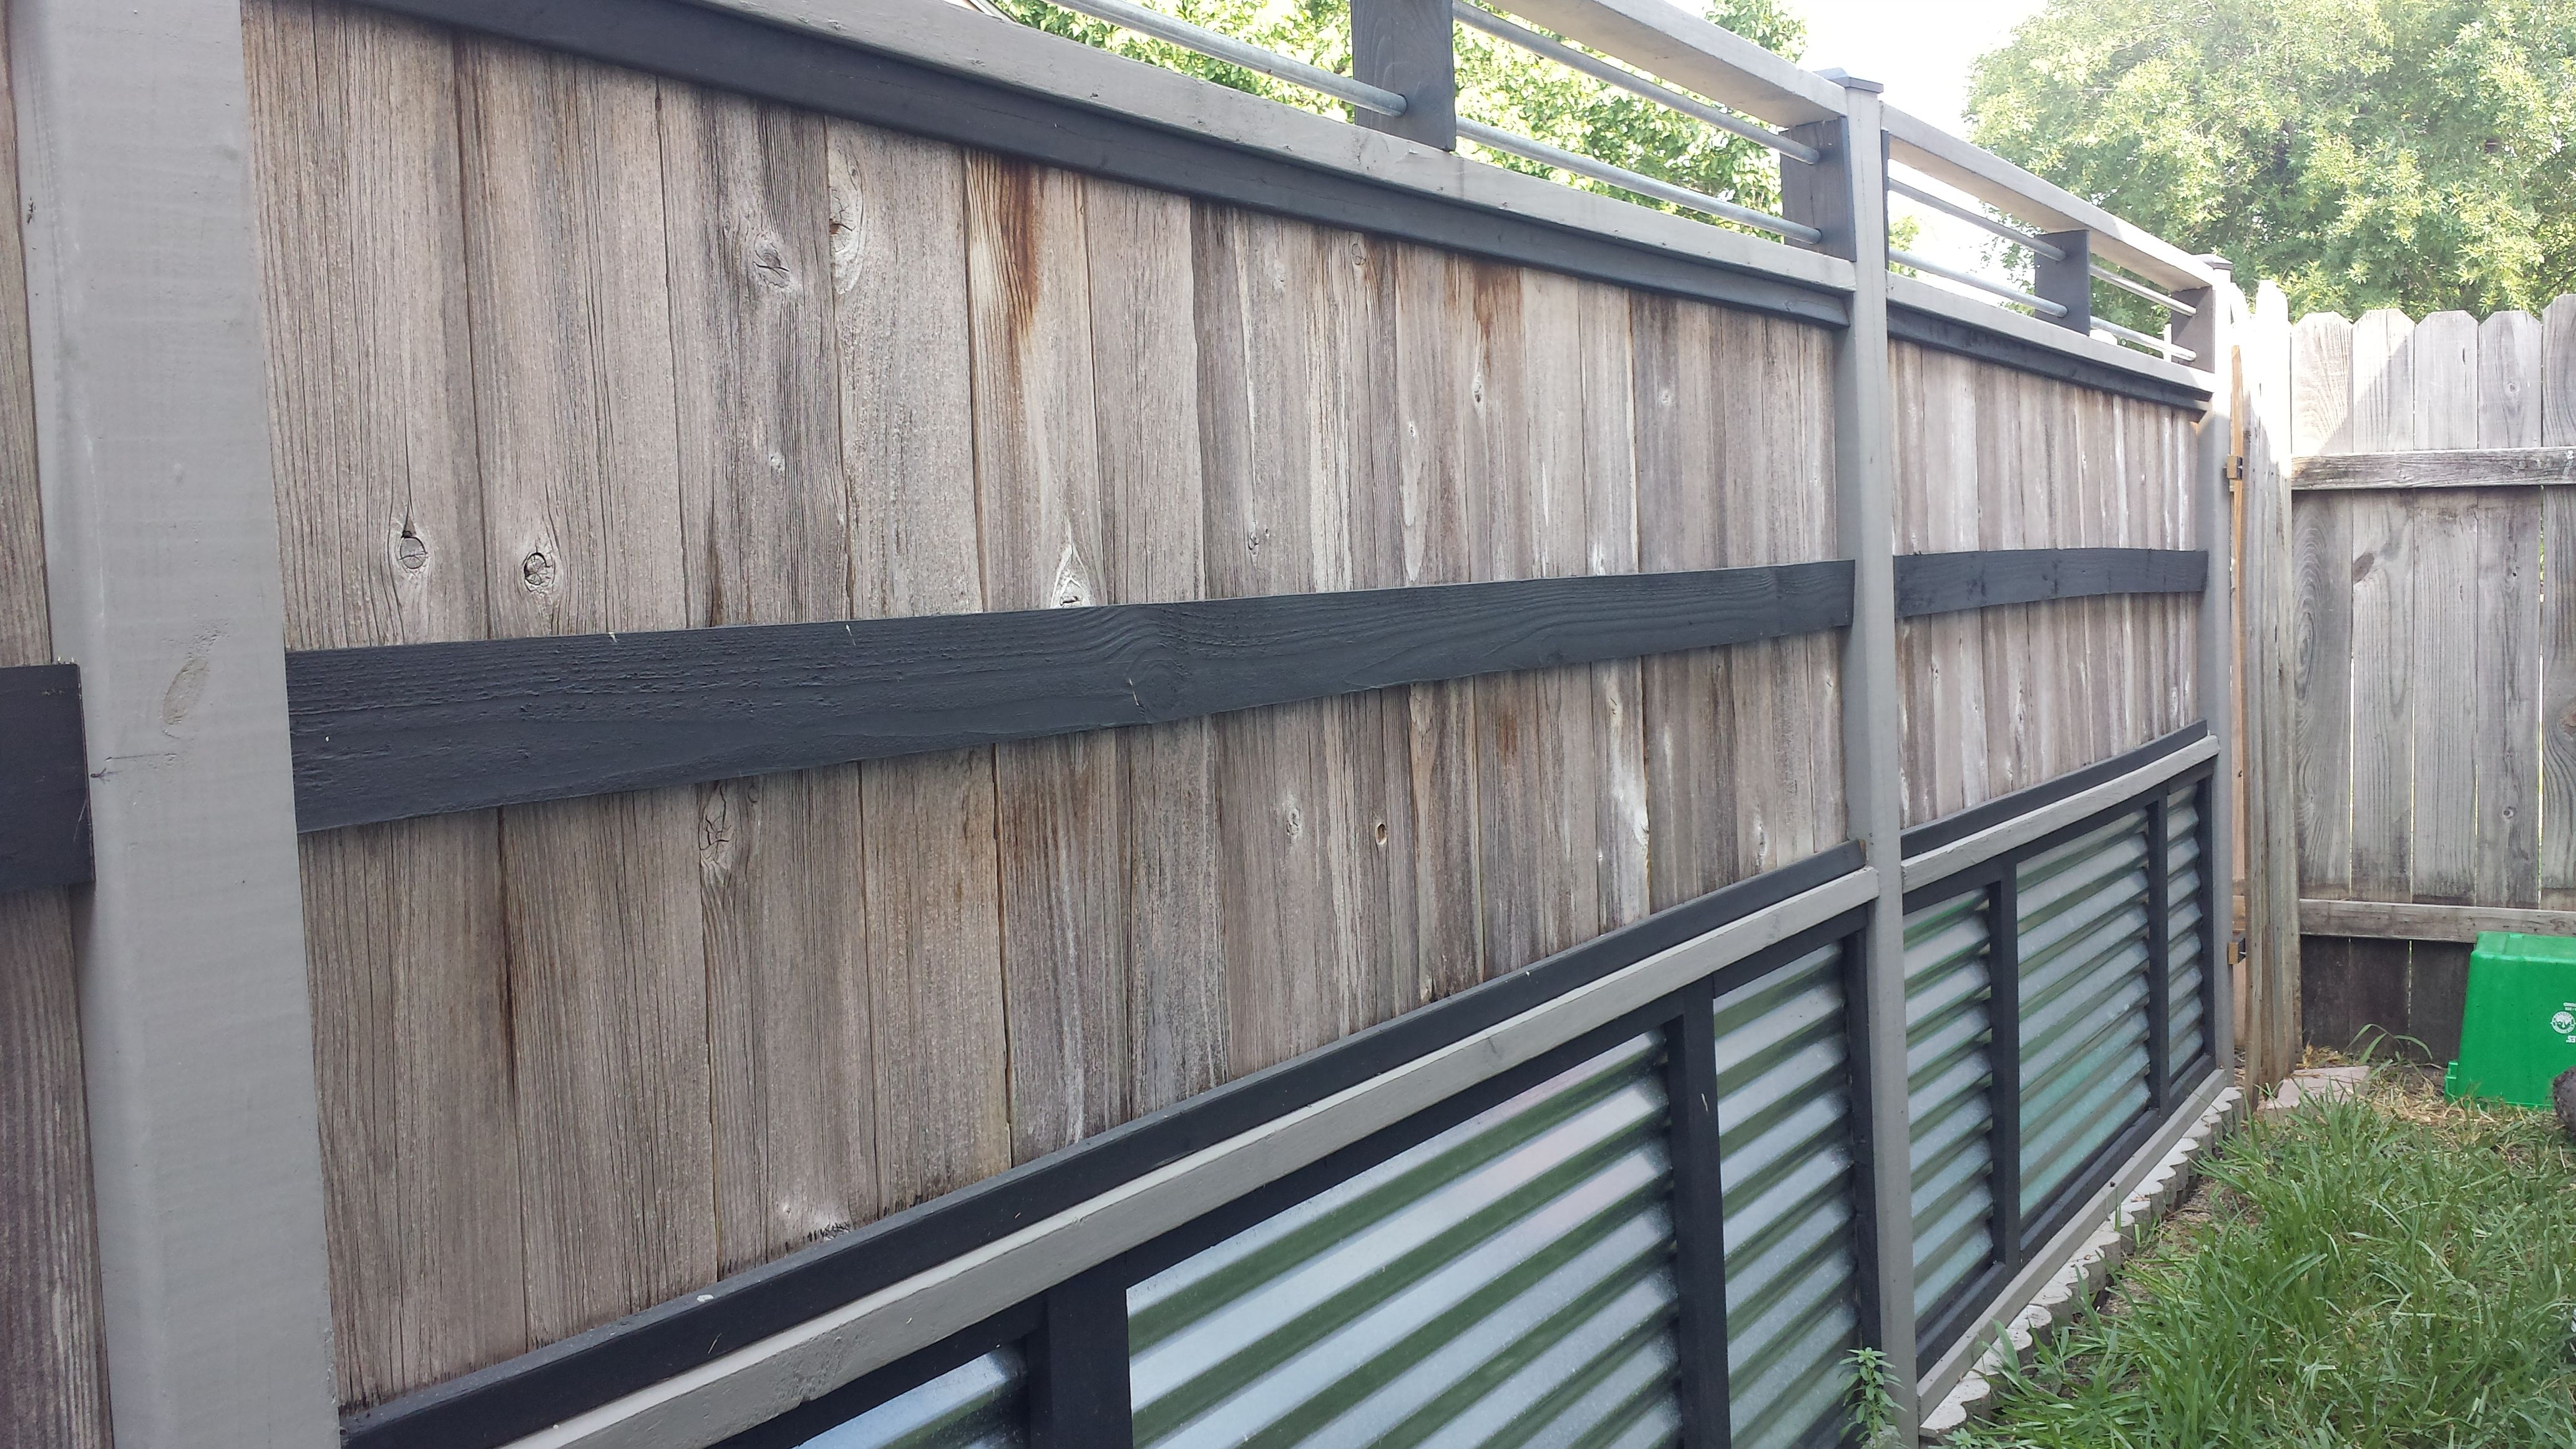 Modern industrial look with conduit, corrugated metal and recycled ...